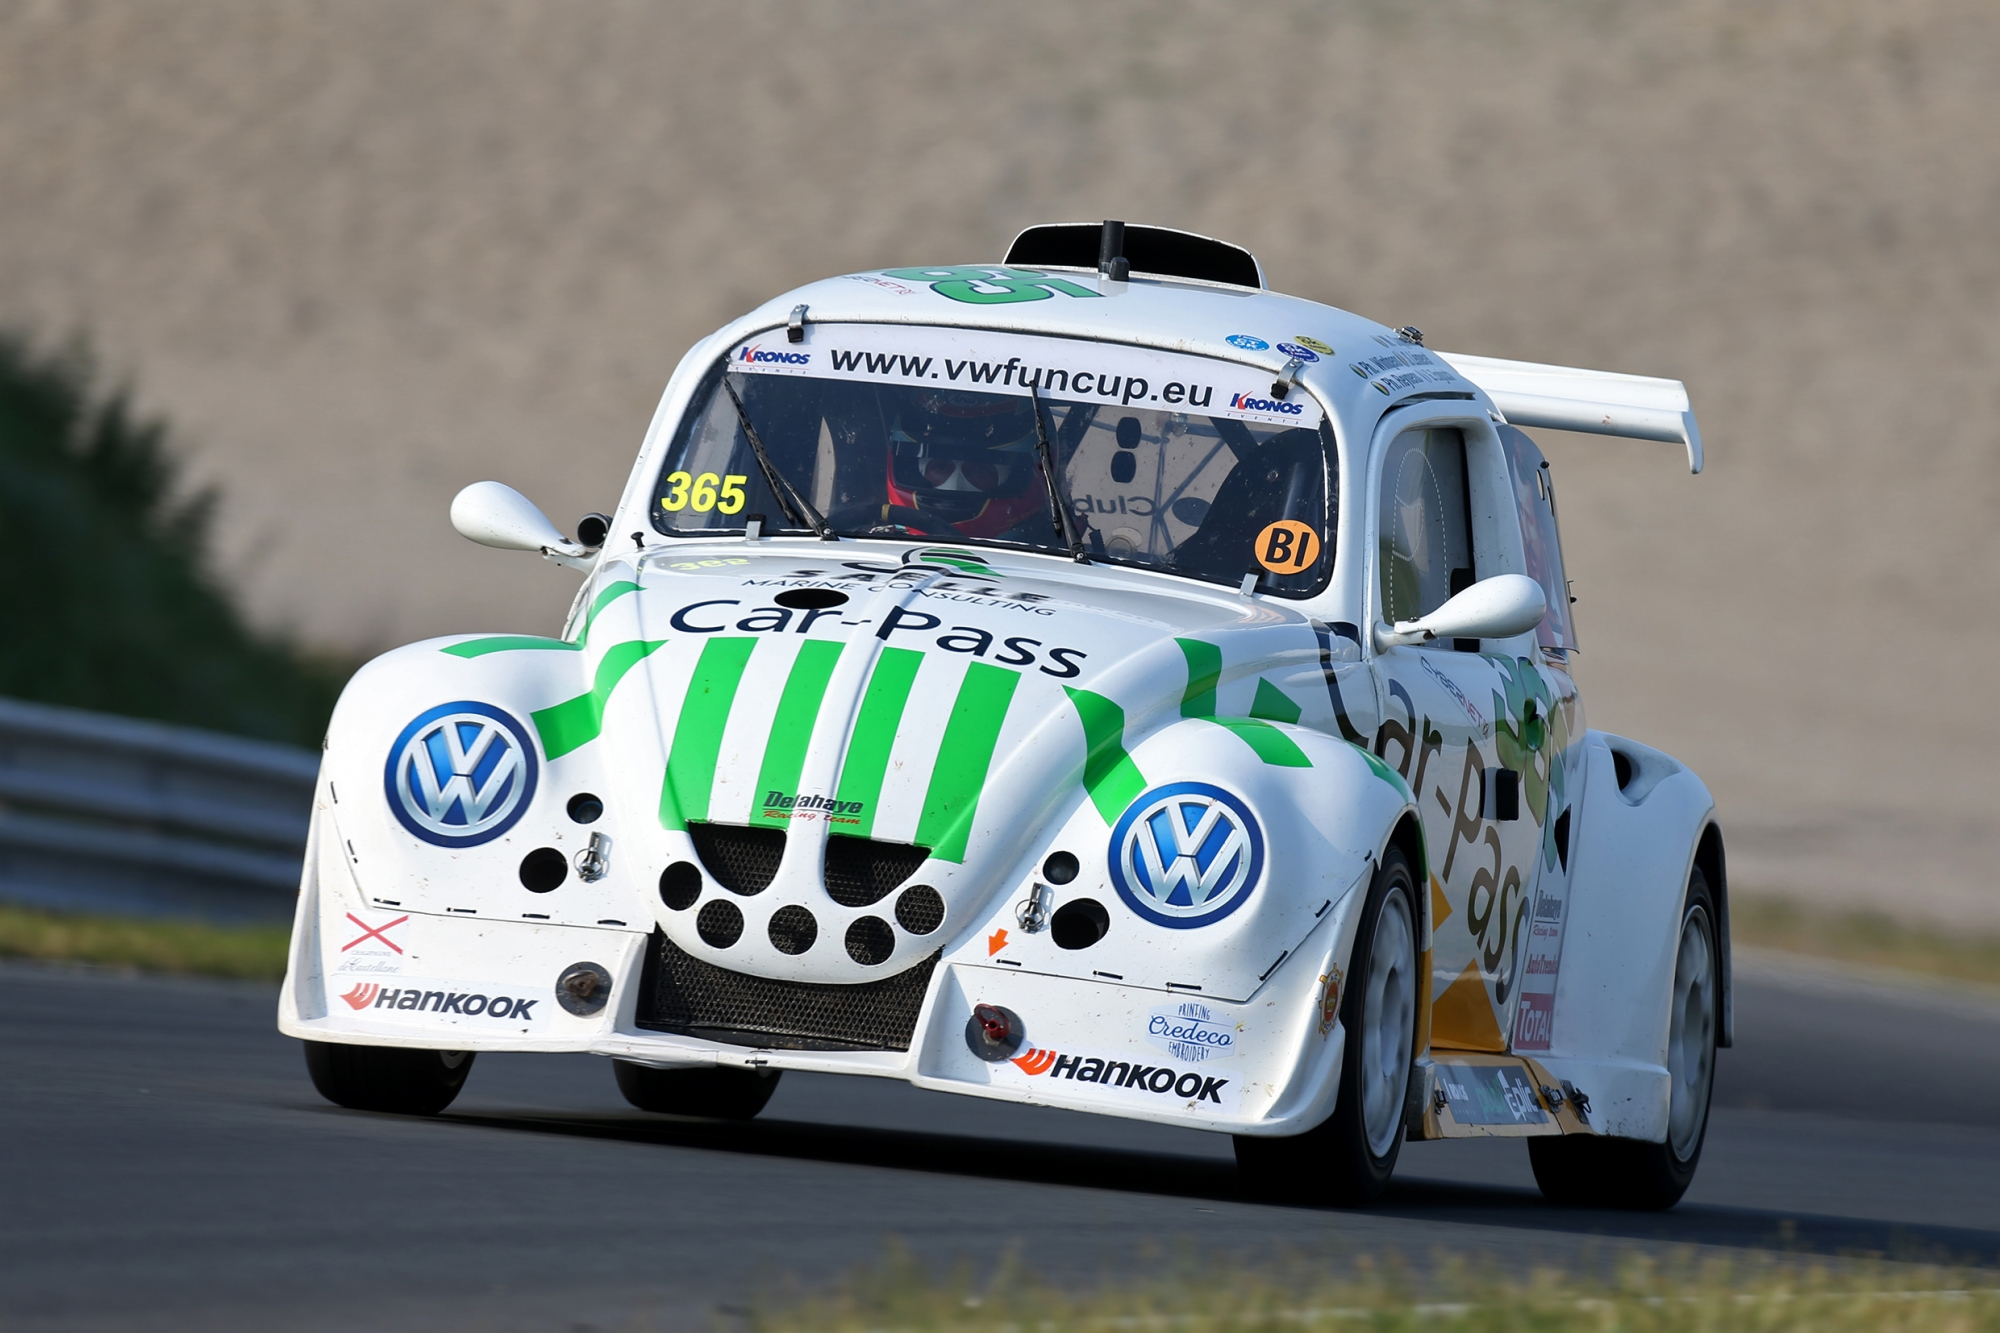 image 3 - Socardenne by Milo grabs the Pole Position in Zandvoort